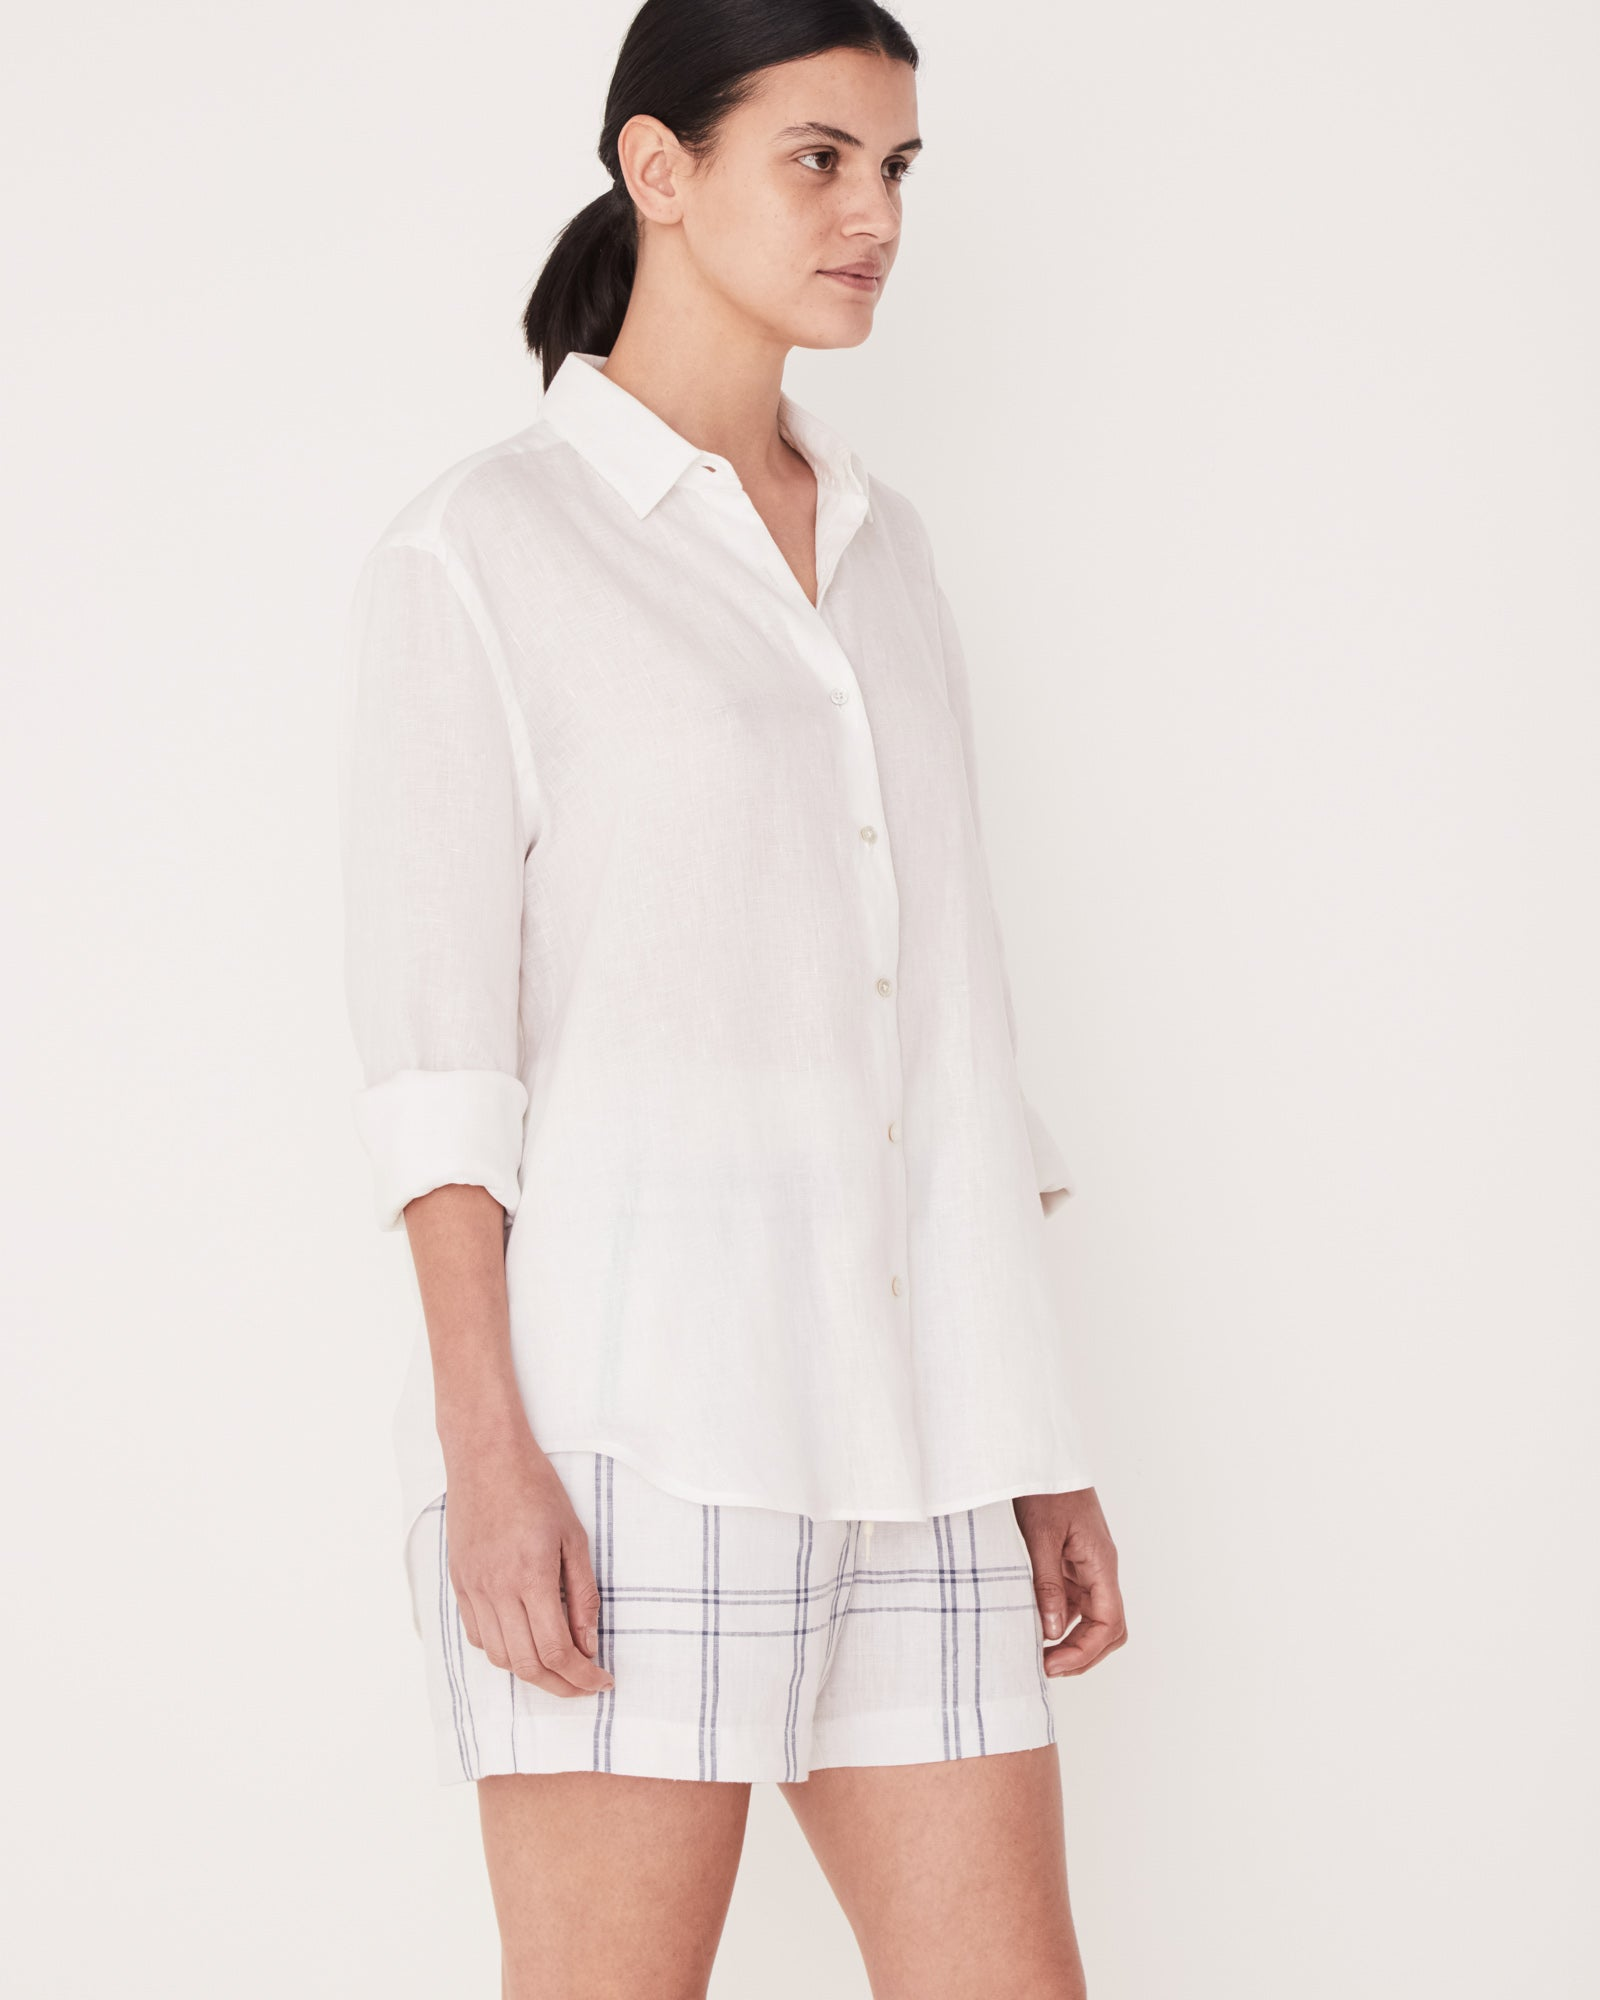 Assembly Label - White Xander Linen Shirt